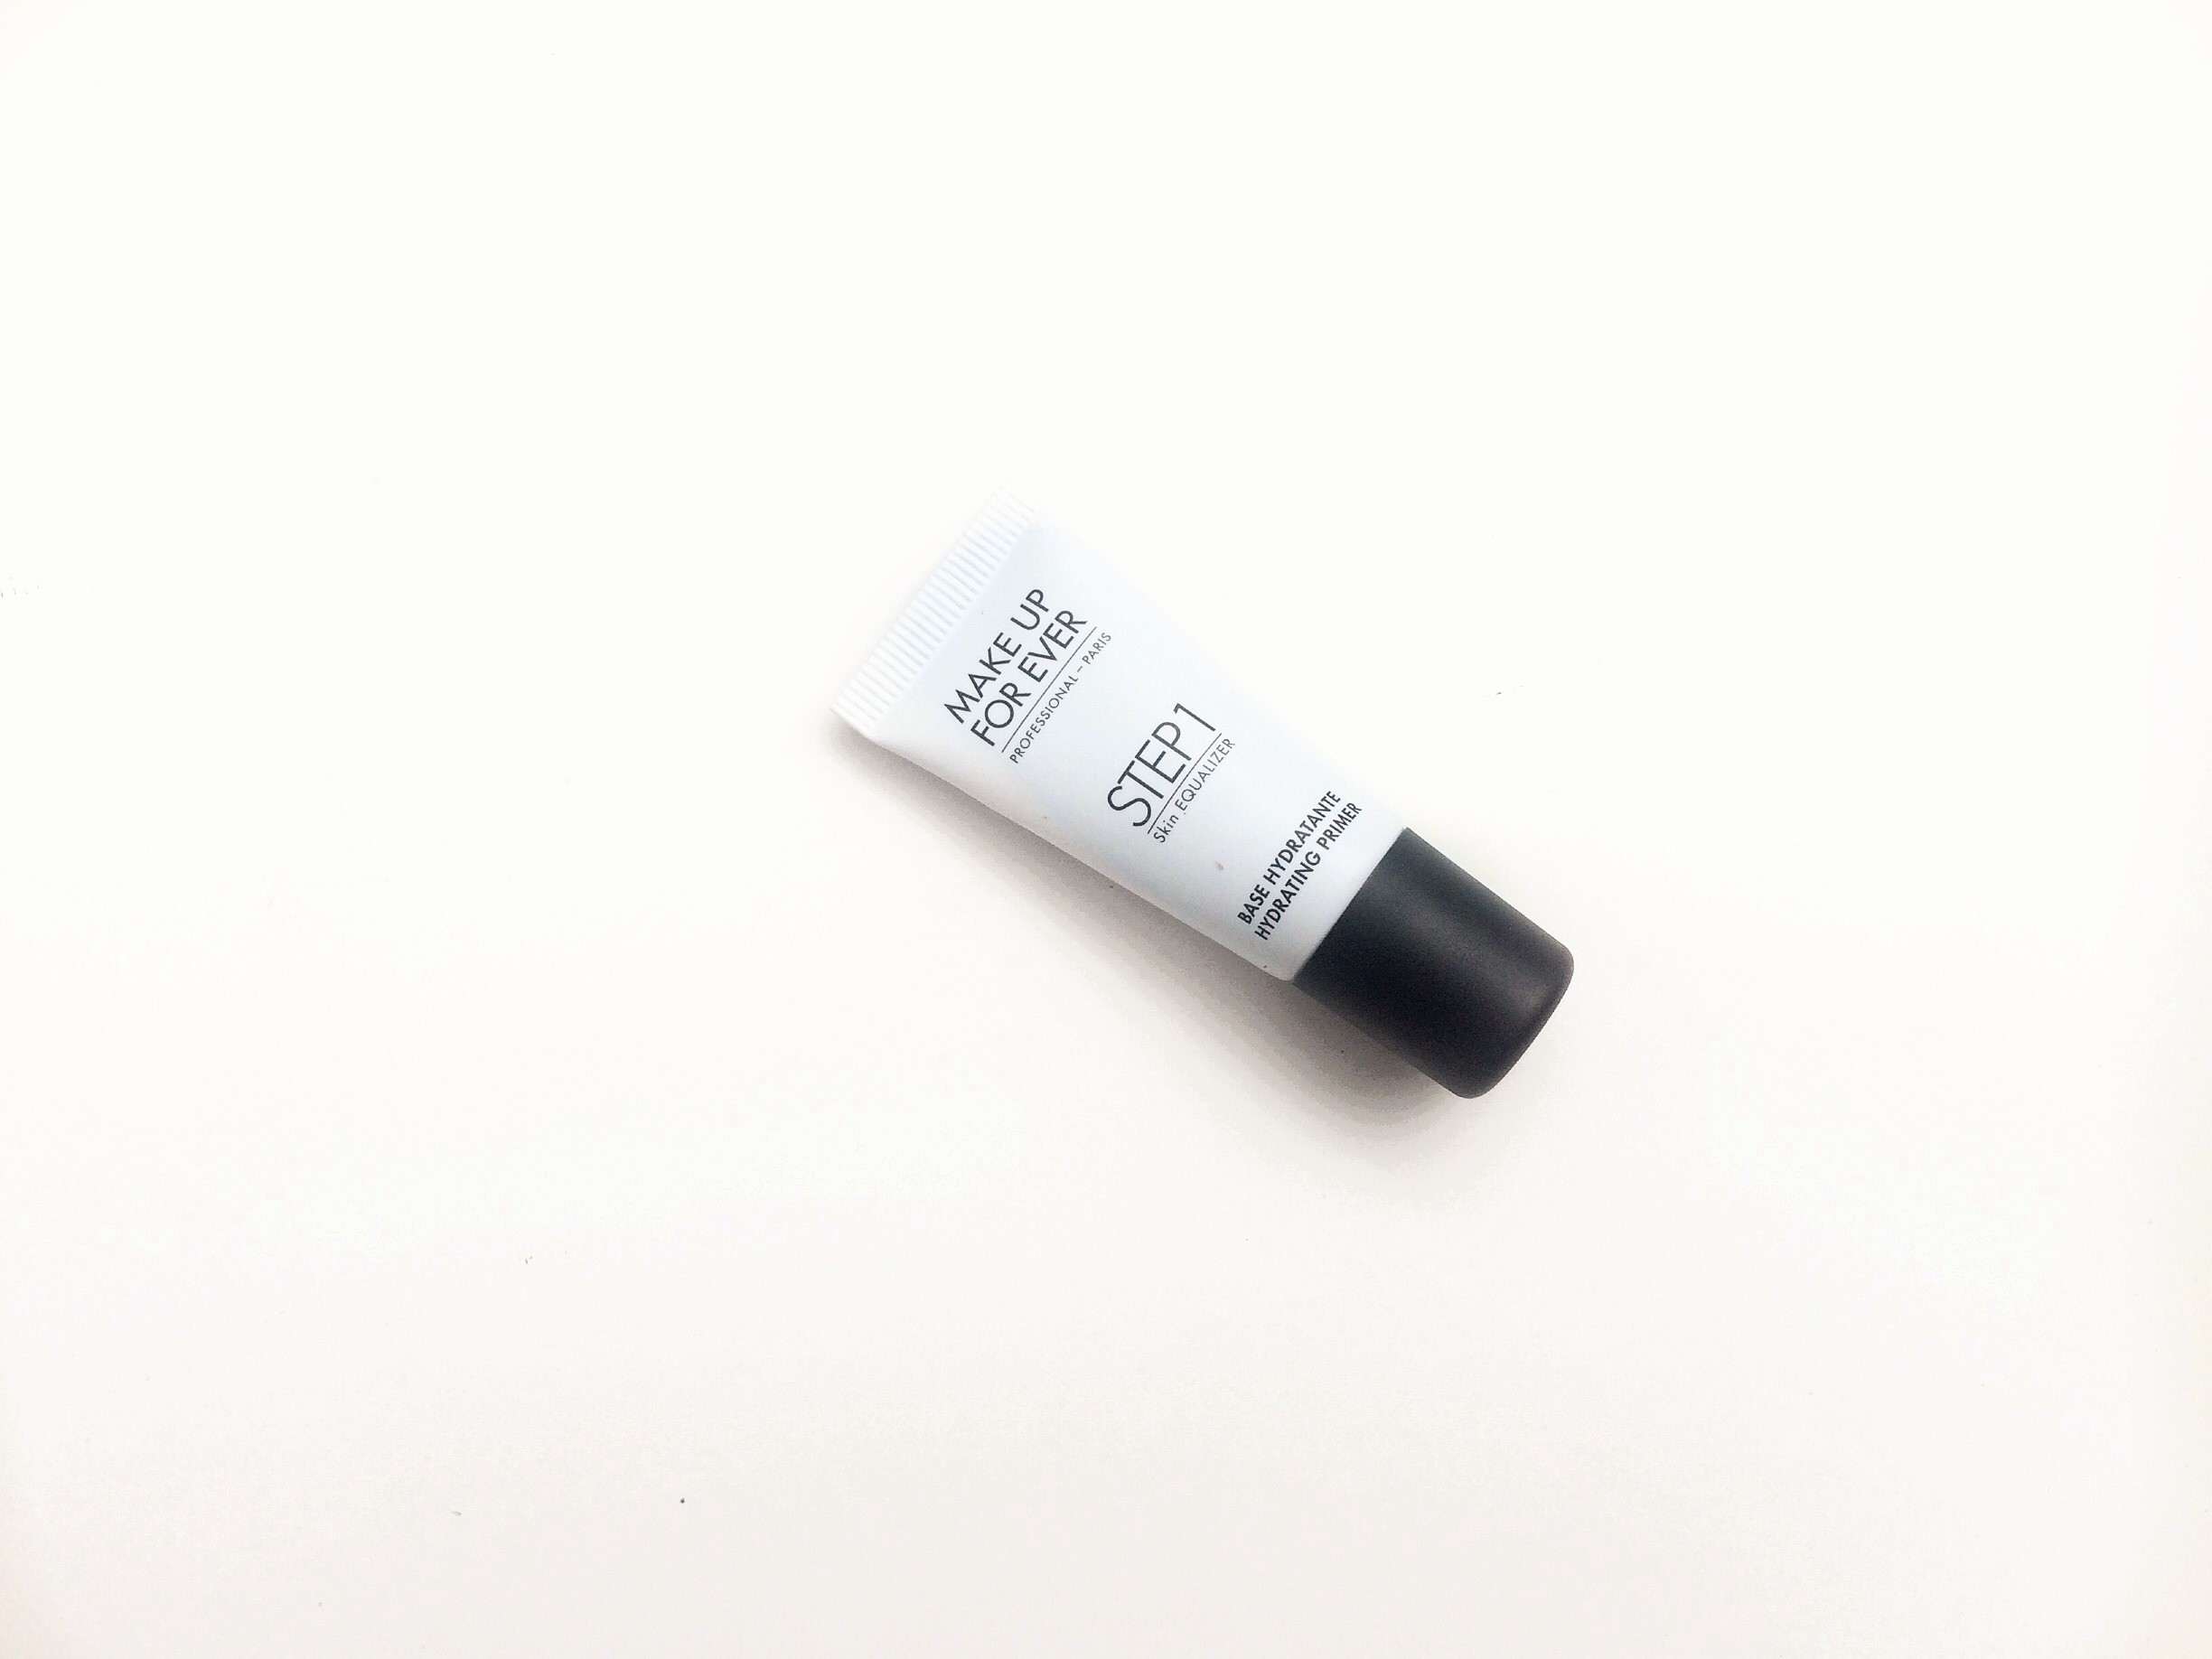 Review Make Up For Ever Step 1 Skin Equalizer Hydrating Primer (1).jpg